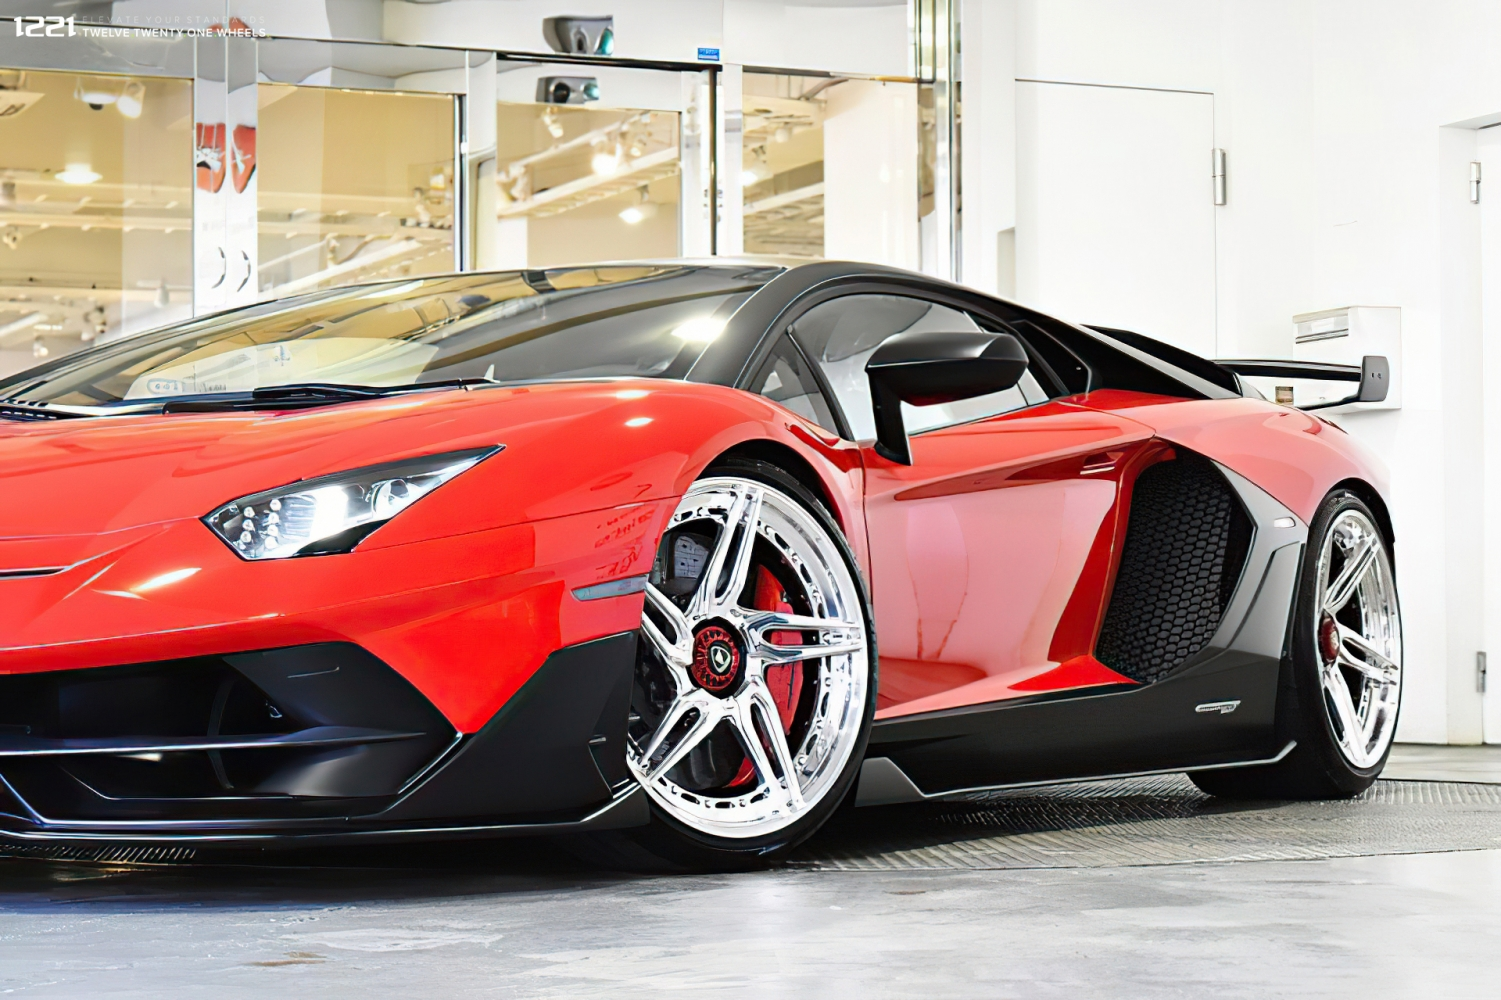 Lamborghini SVJ Forged Modular Wheels